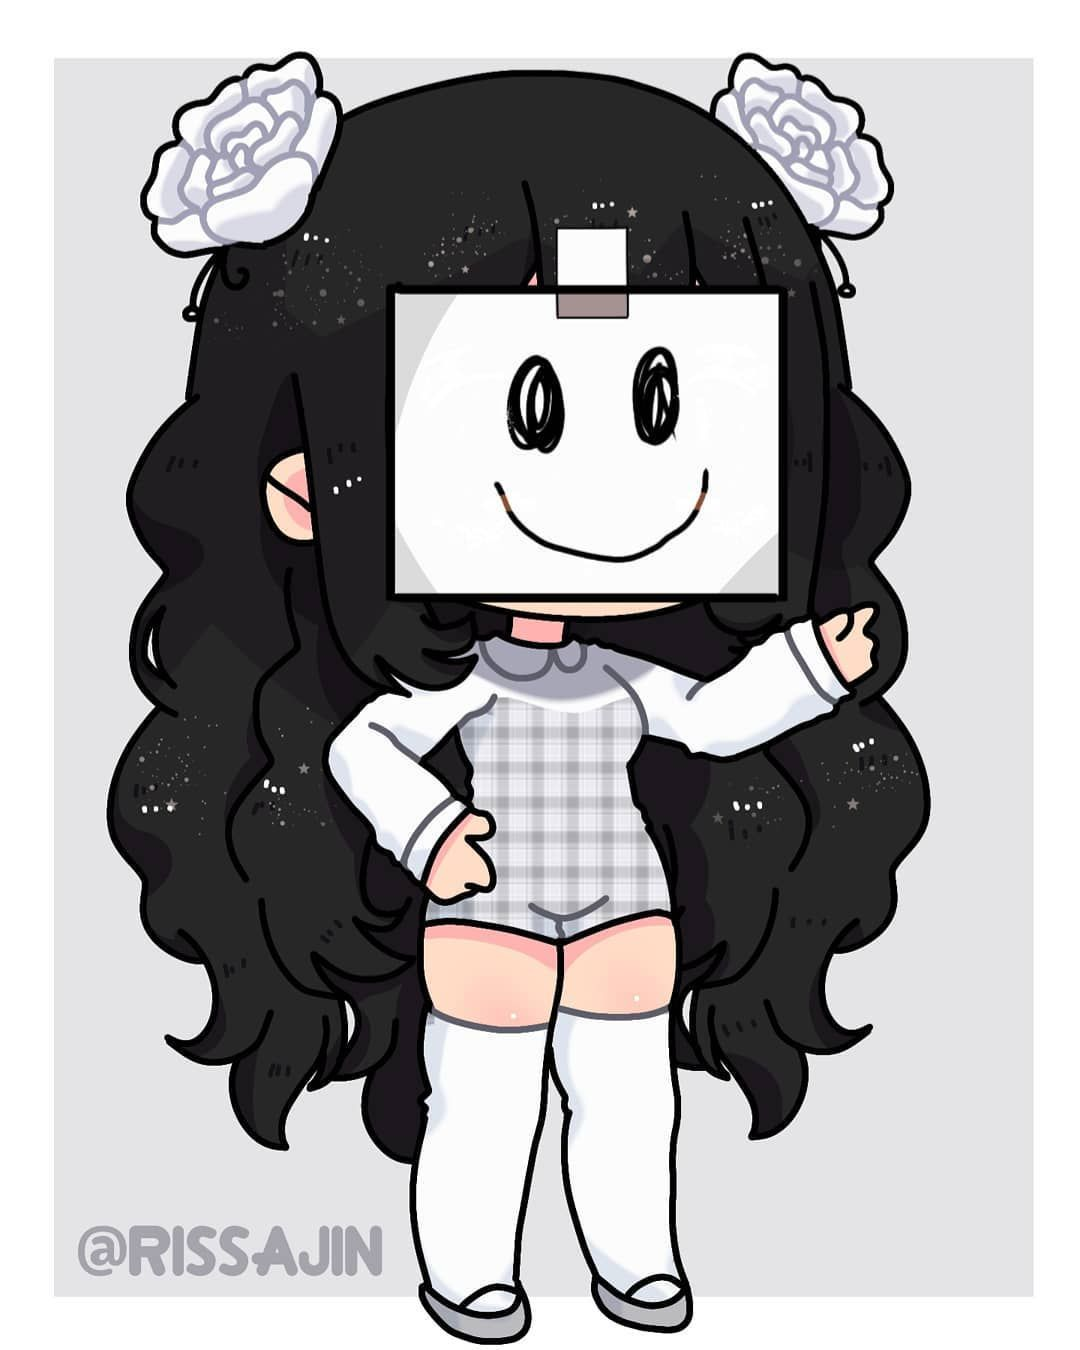 5 563 Likes 64 Comments Your Noob Editor Rissajin On Instagram Another Roblox X Gacha Ed In 2020 Girls Cartoon Art Cute Anime Character Cute Anime Chibi